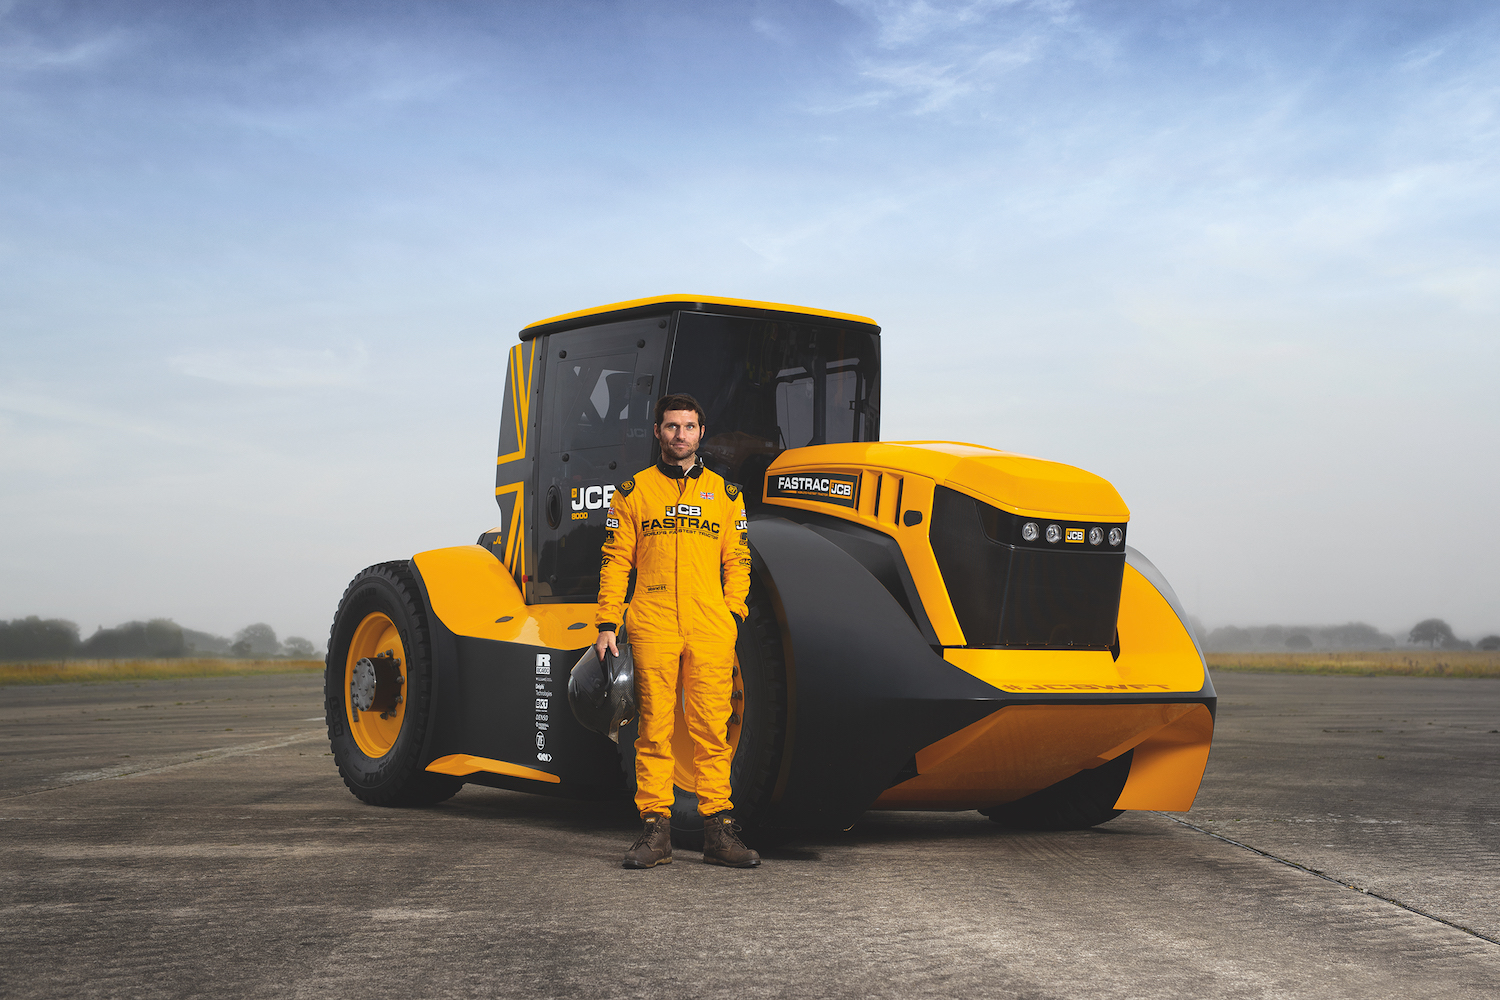 JCB turbo tractor and driver